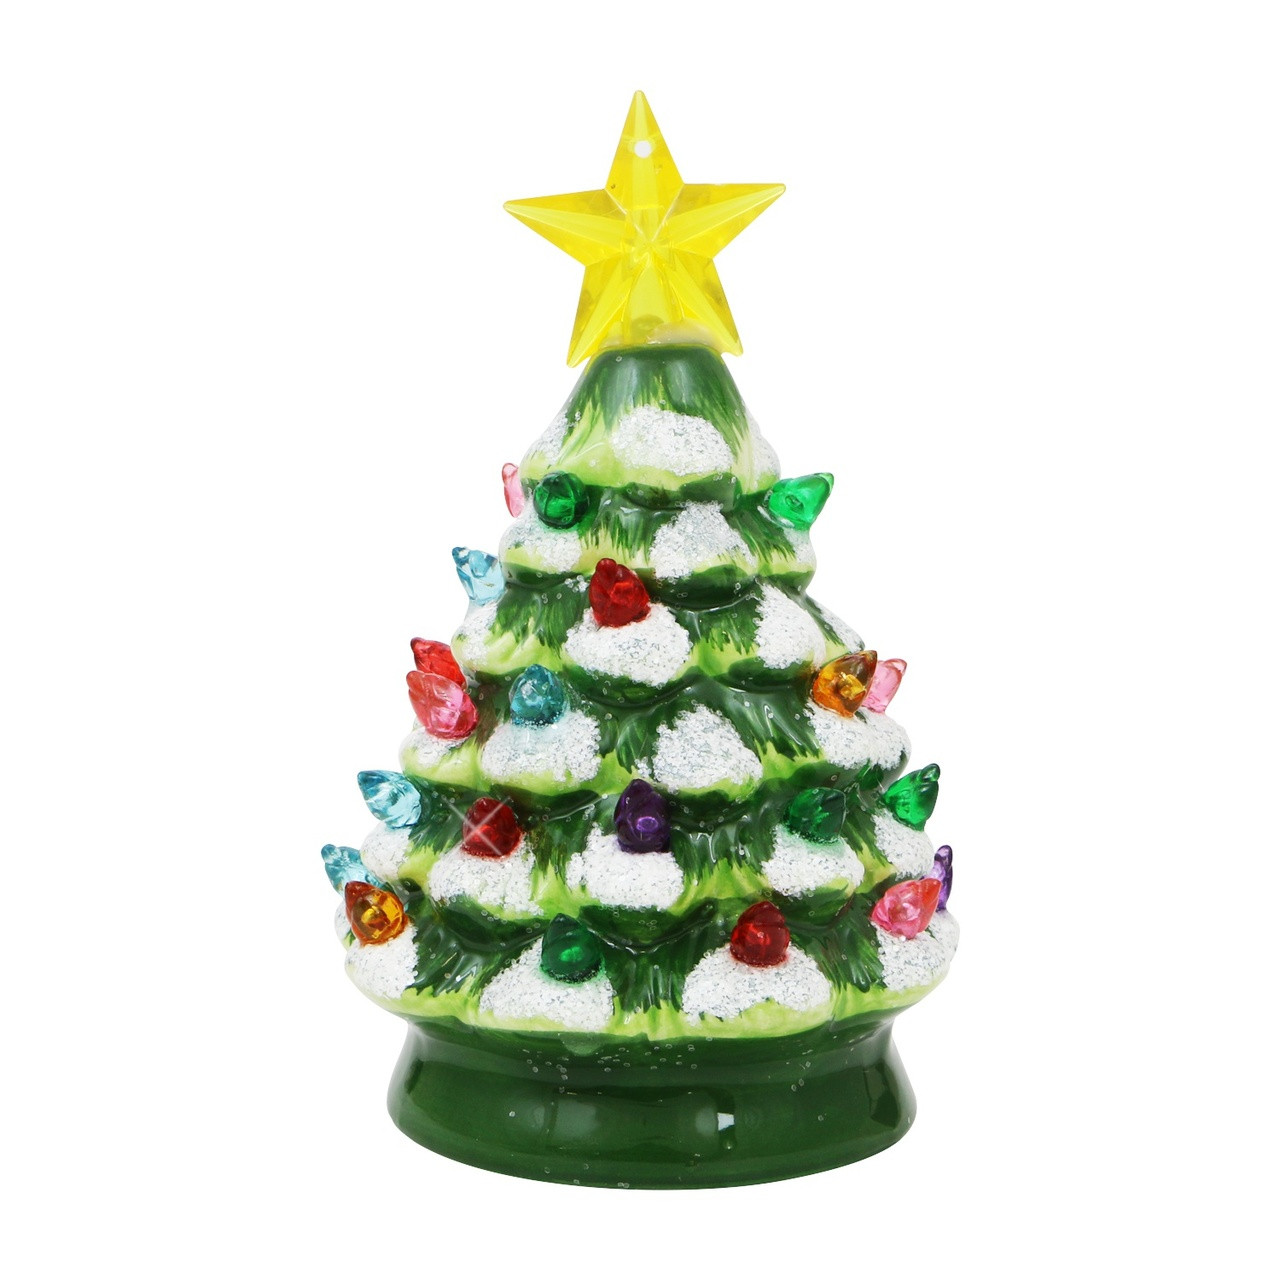 Ceramic Old Fashioned Light Up Christmas Tree 5.5 Inches